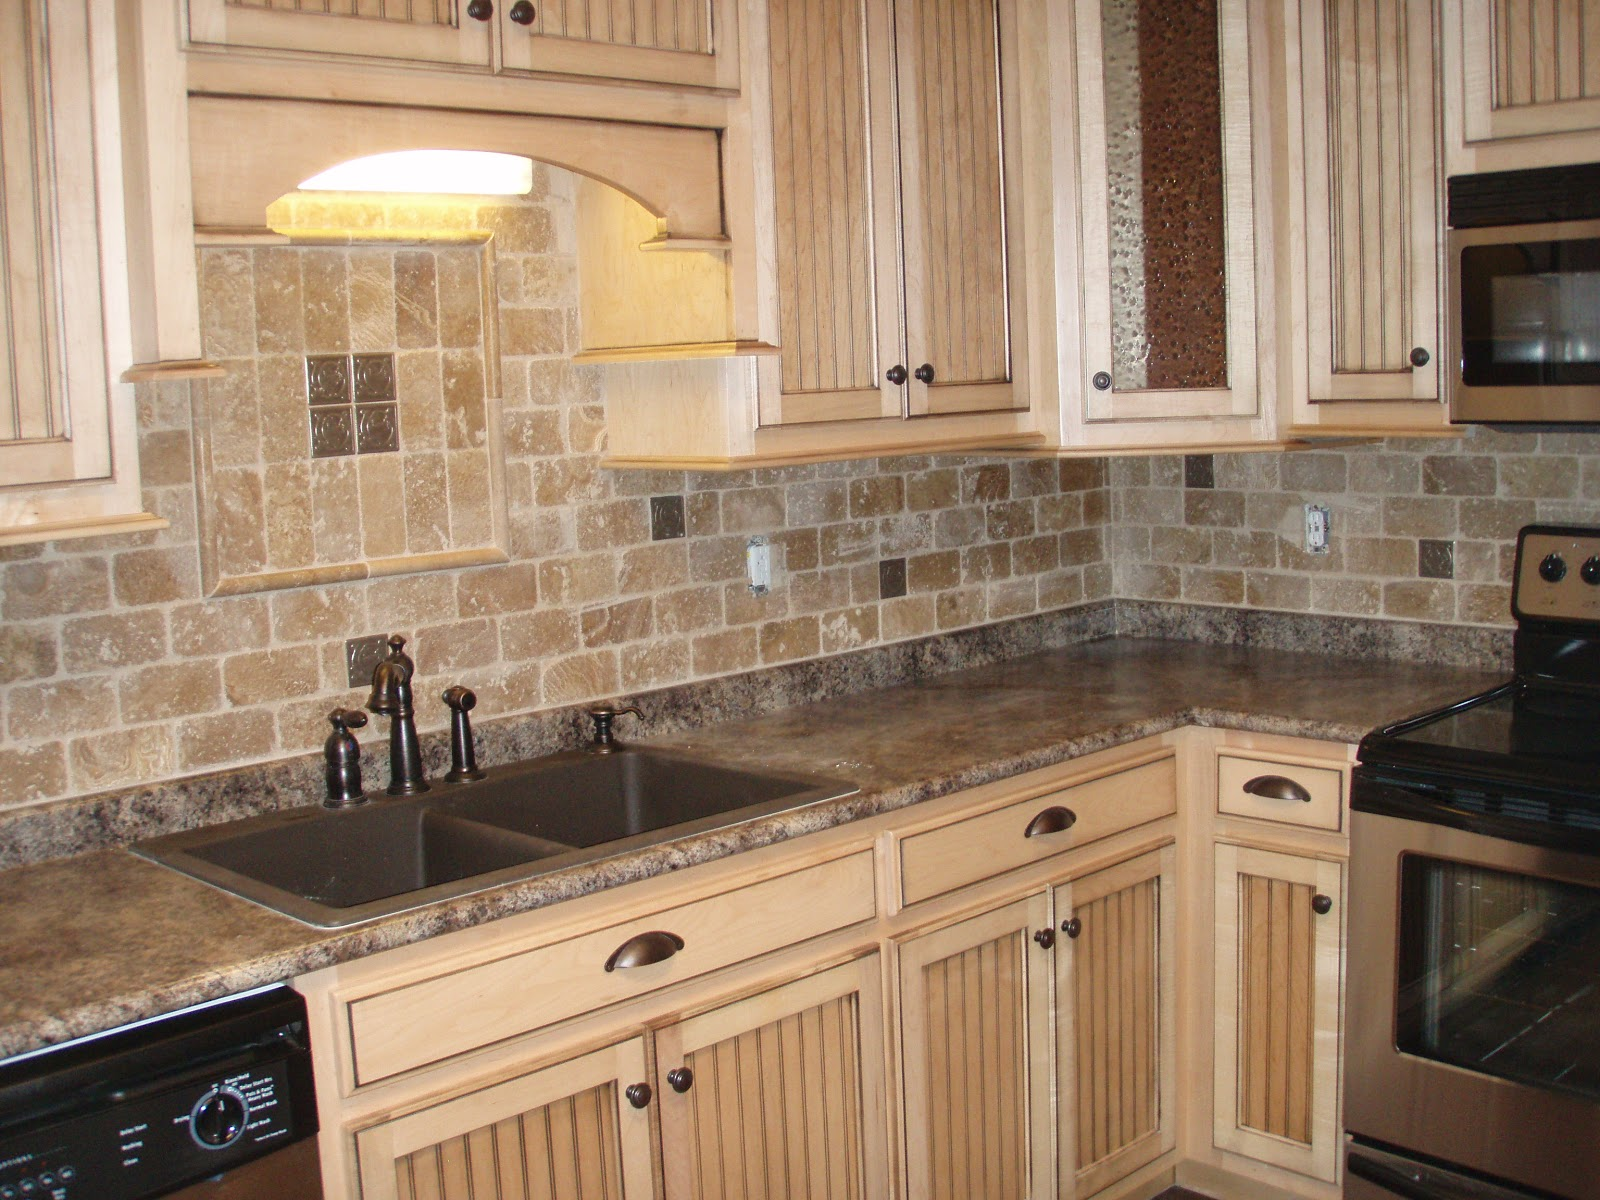 White Kitchen Backsplash Pictures Good White Subway Tile – Kitchen Backsplash White Cabinets